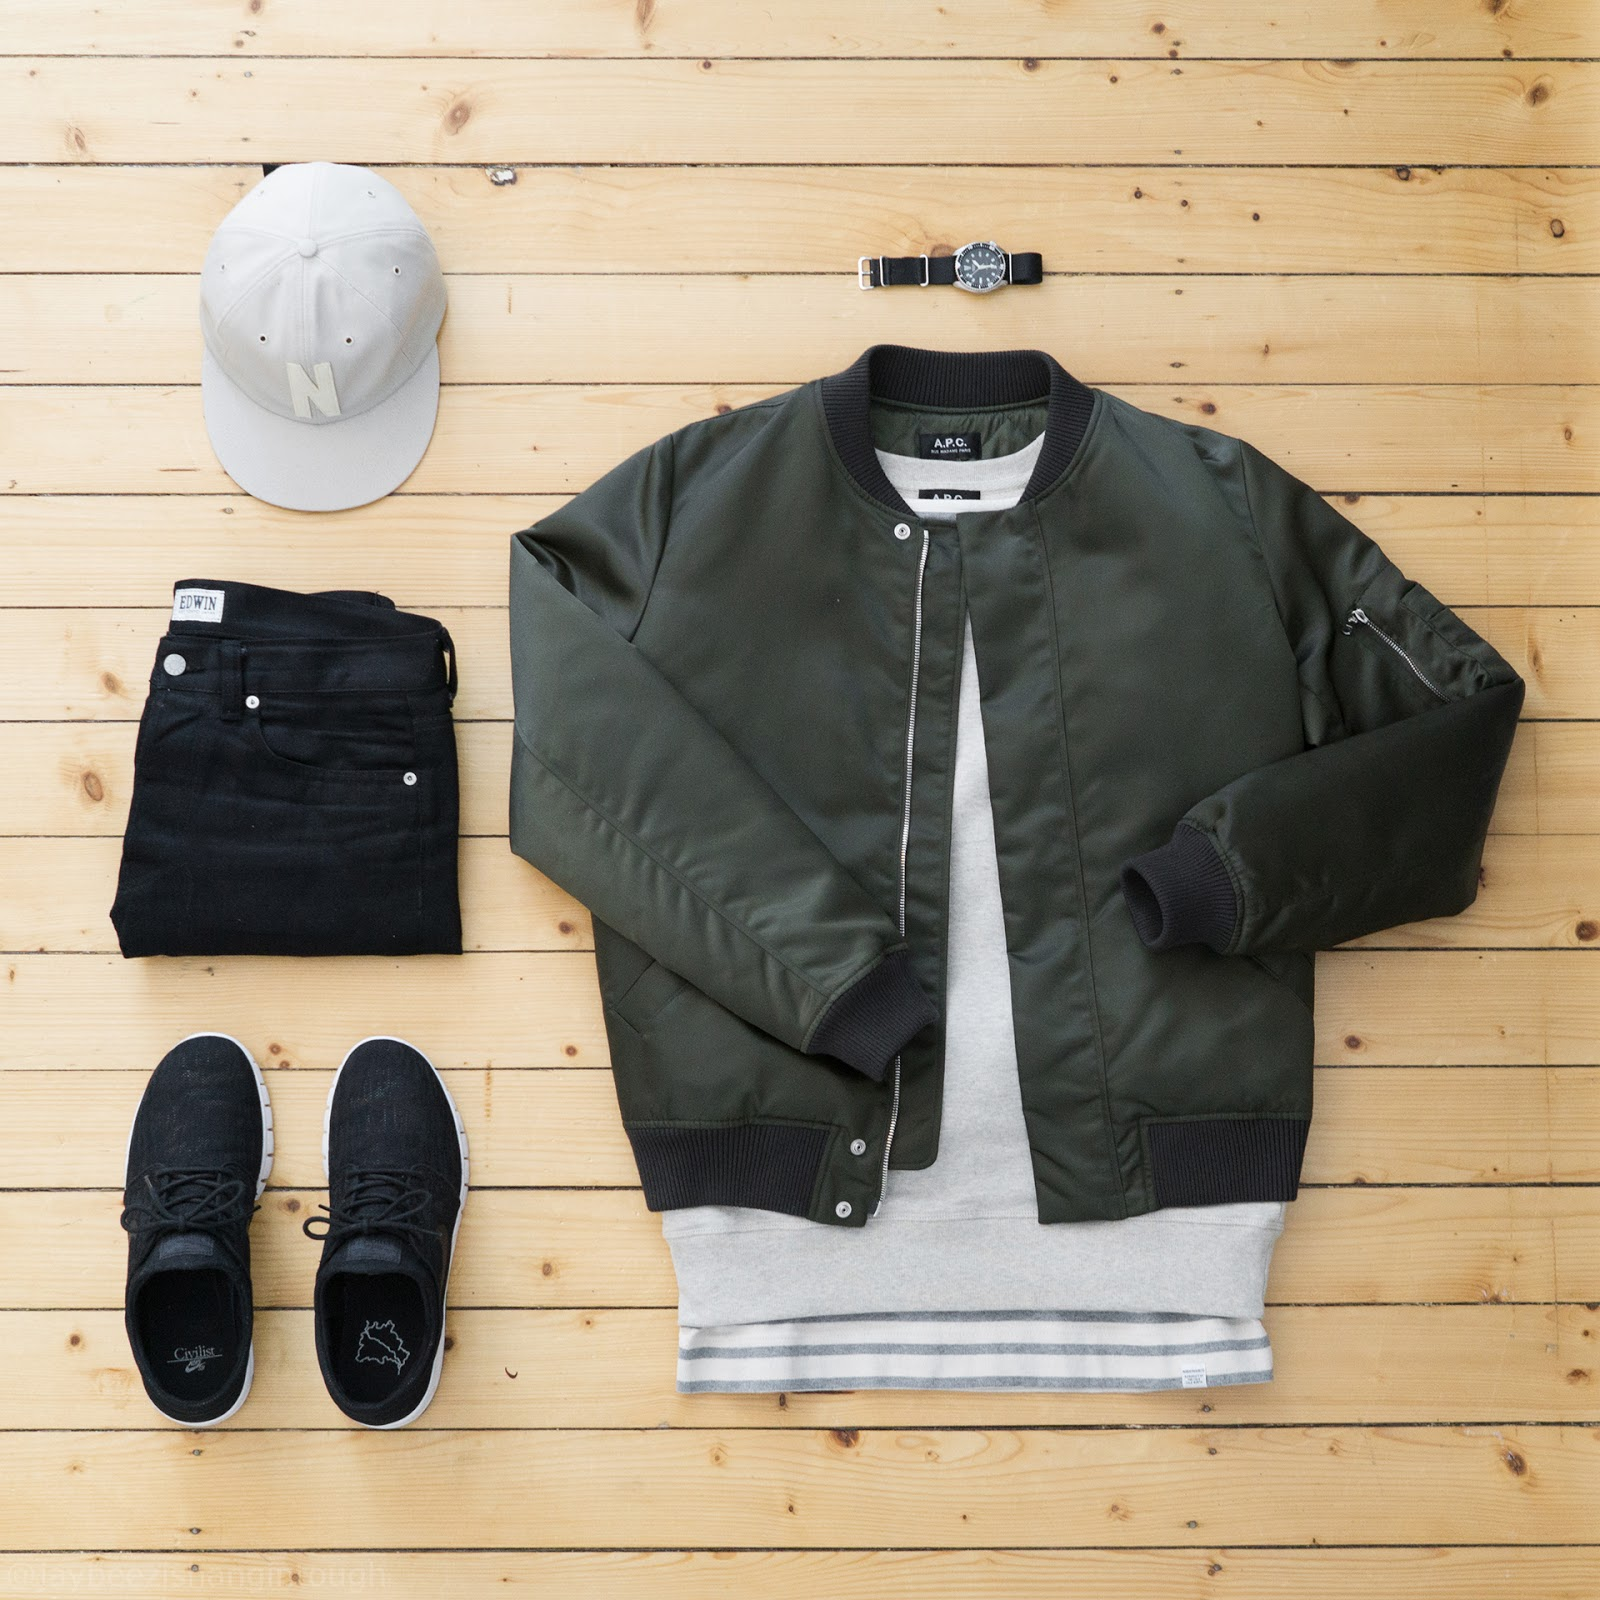 00046a36 #APC rudy bomber jacket | APC training crewneck | #NorseProjects james  compact tee | #Edwin ed80 white listed selvage denim | NorseProjects logo  6panel cap ...